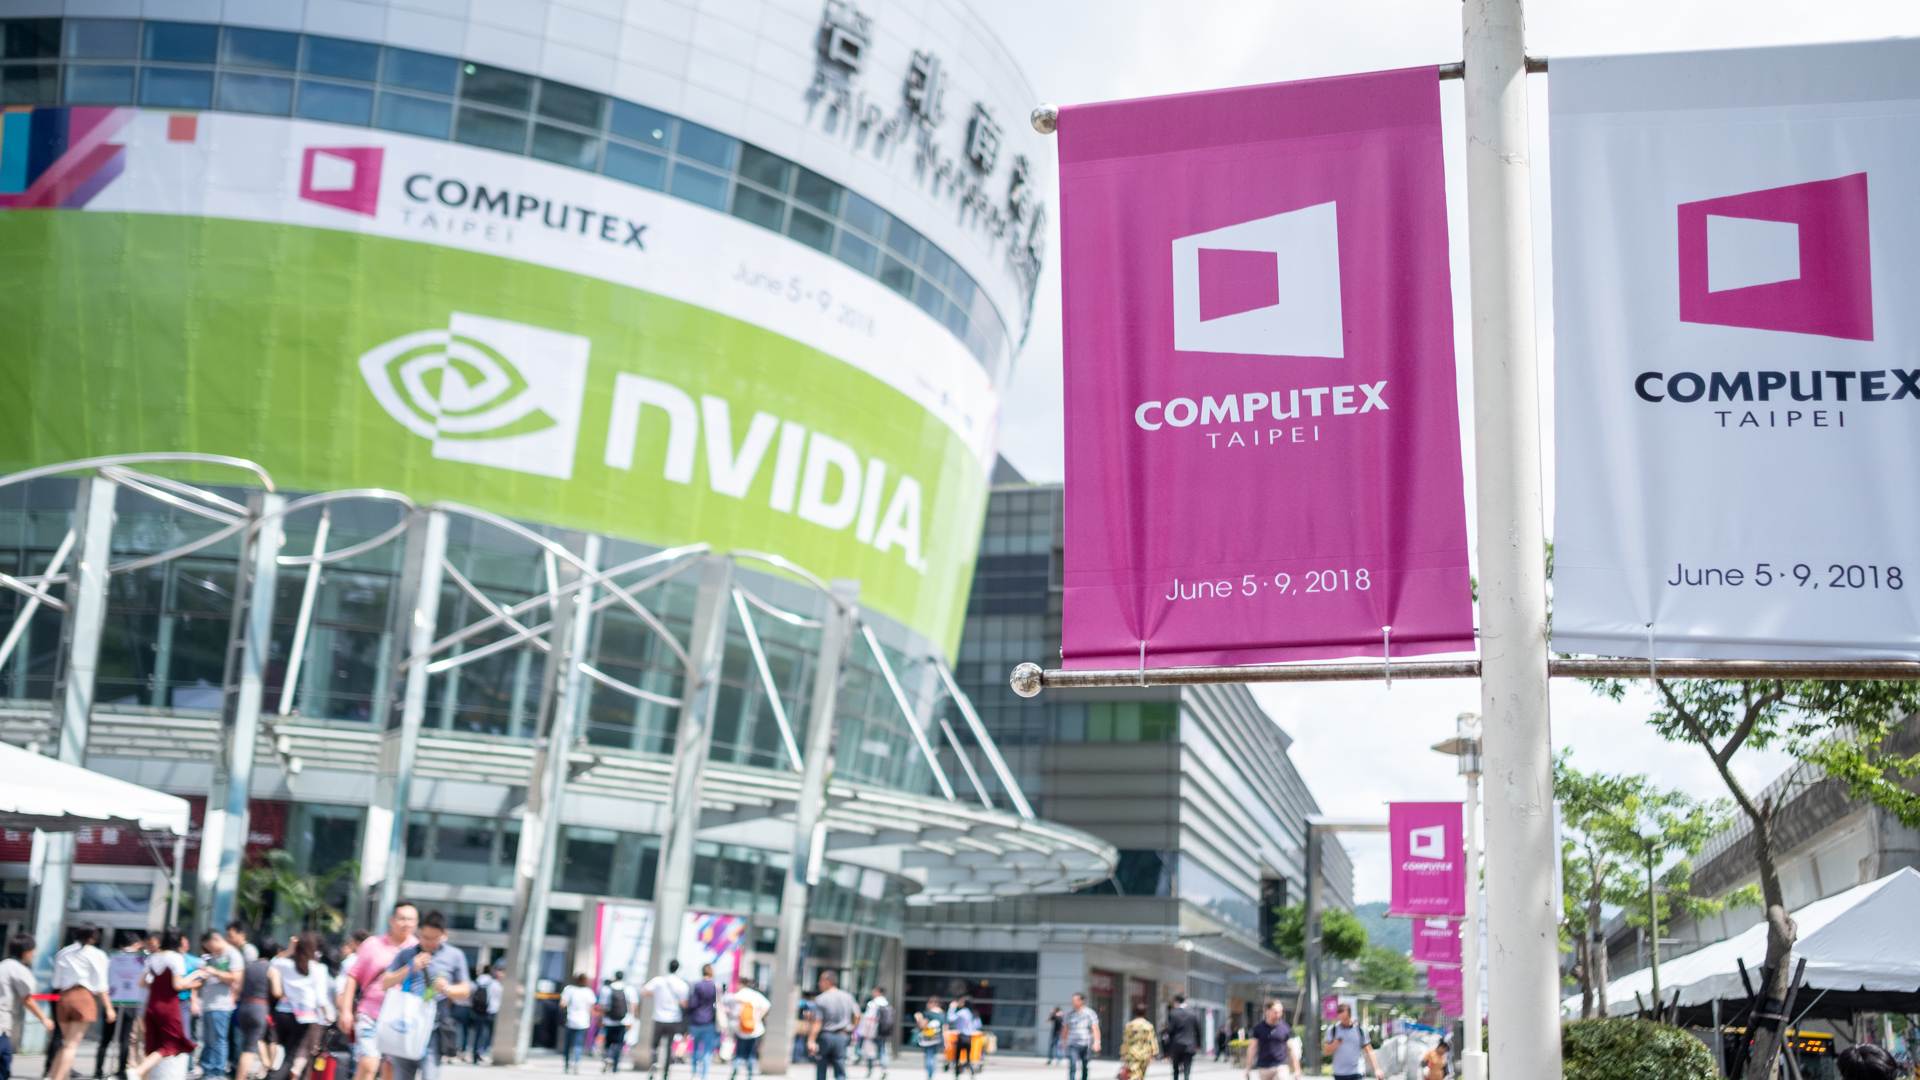 Computex 2019: what to expect from the world's biggest computer show